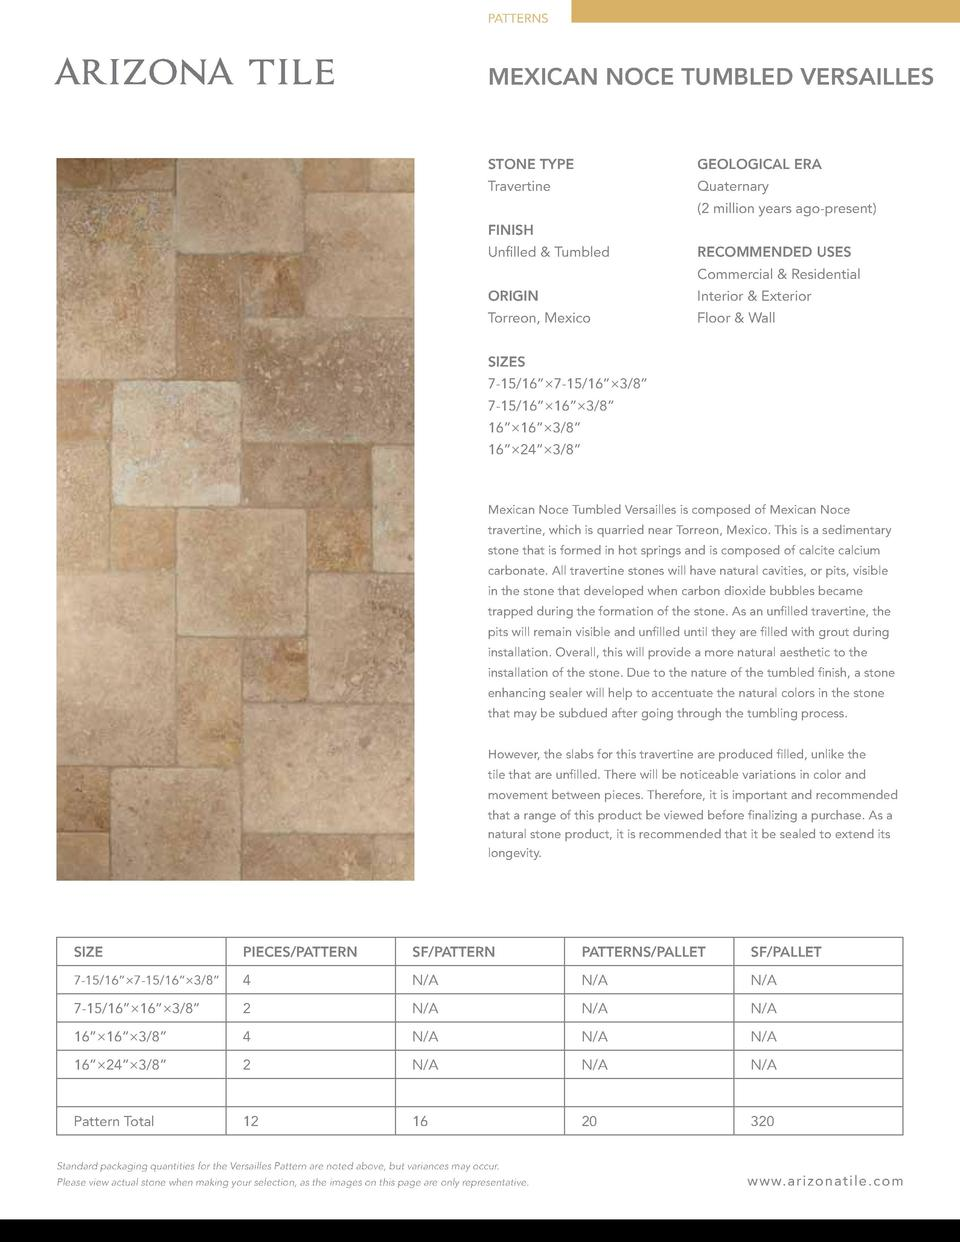 PATTERNS  MEXICAN NOCE TUMBLED VERSAILLES  STONE TYPE  GEOLOGICAL ERA  Travertine  Quaternary  2 million years ago-present...